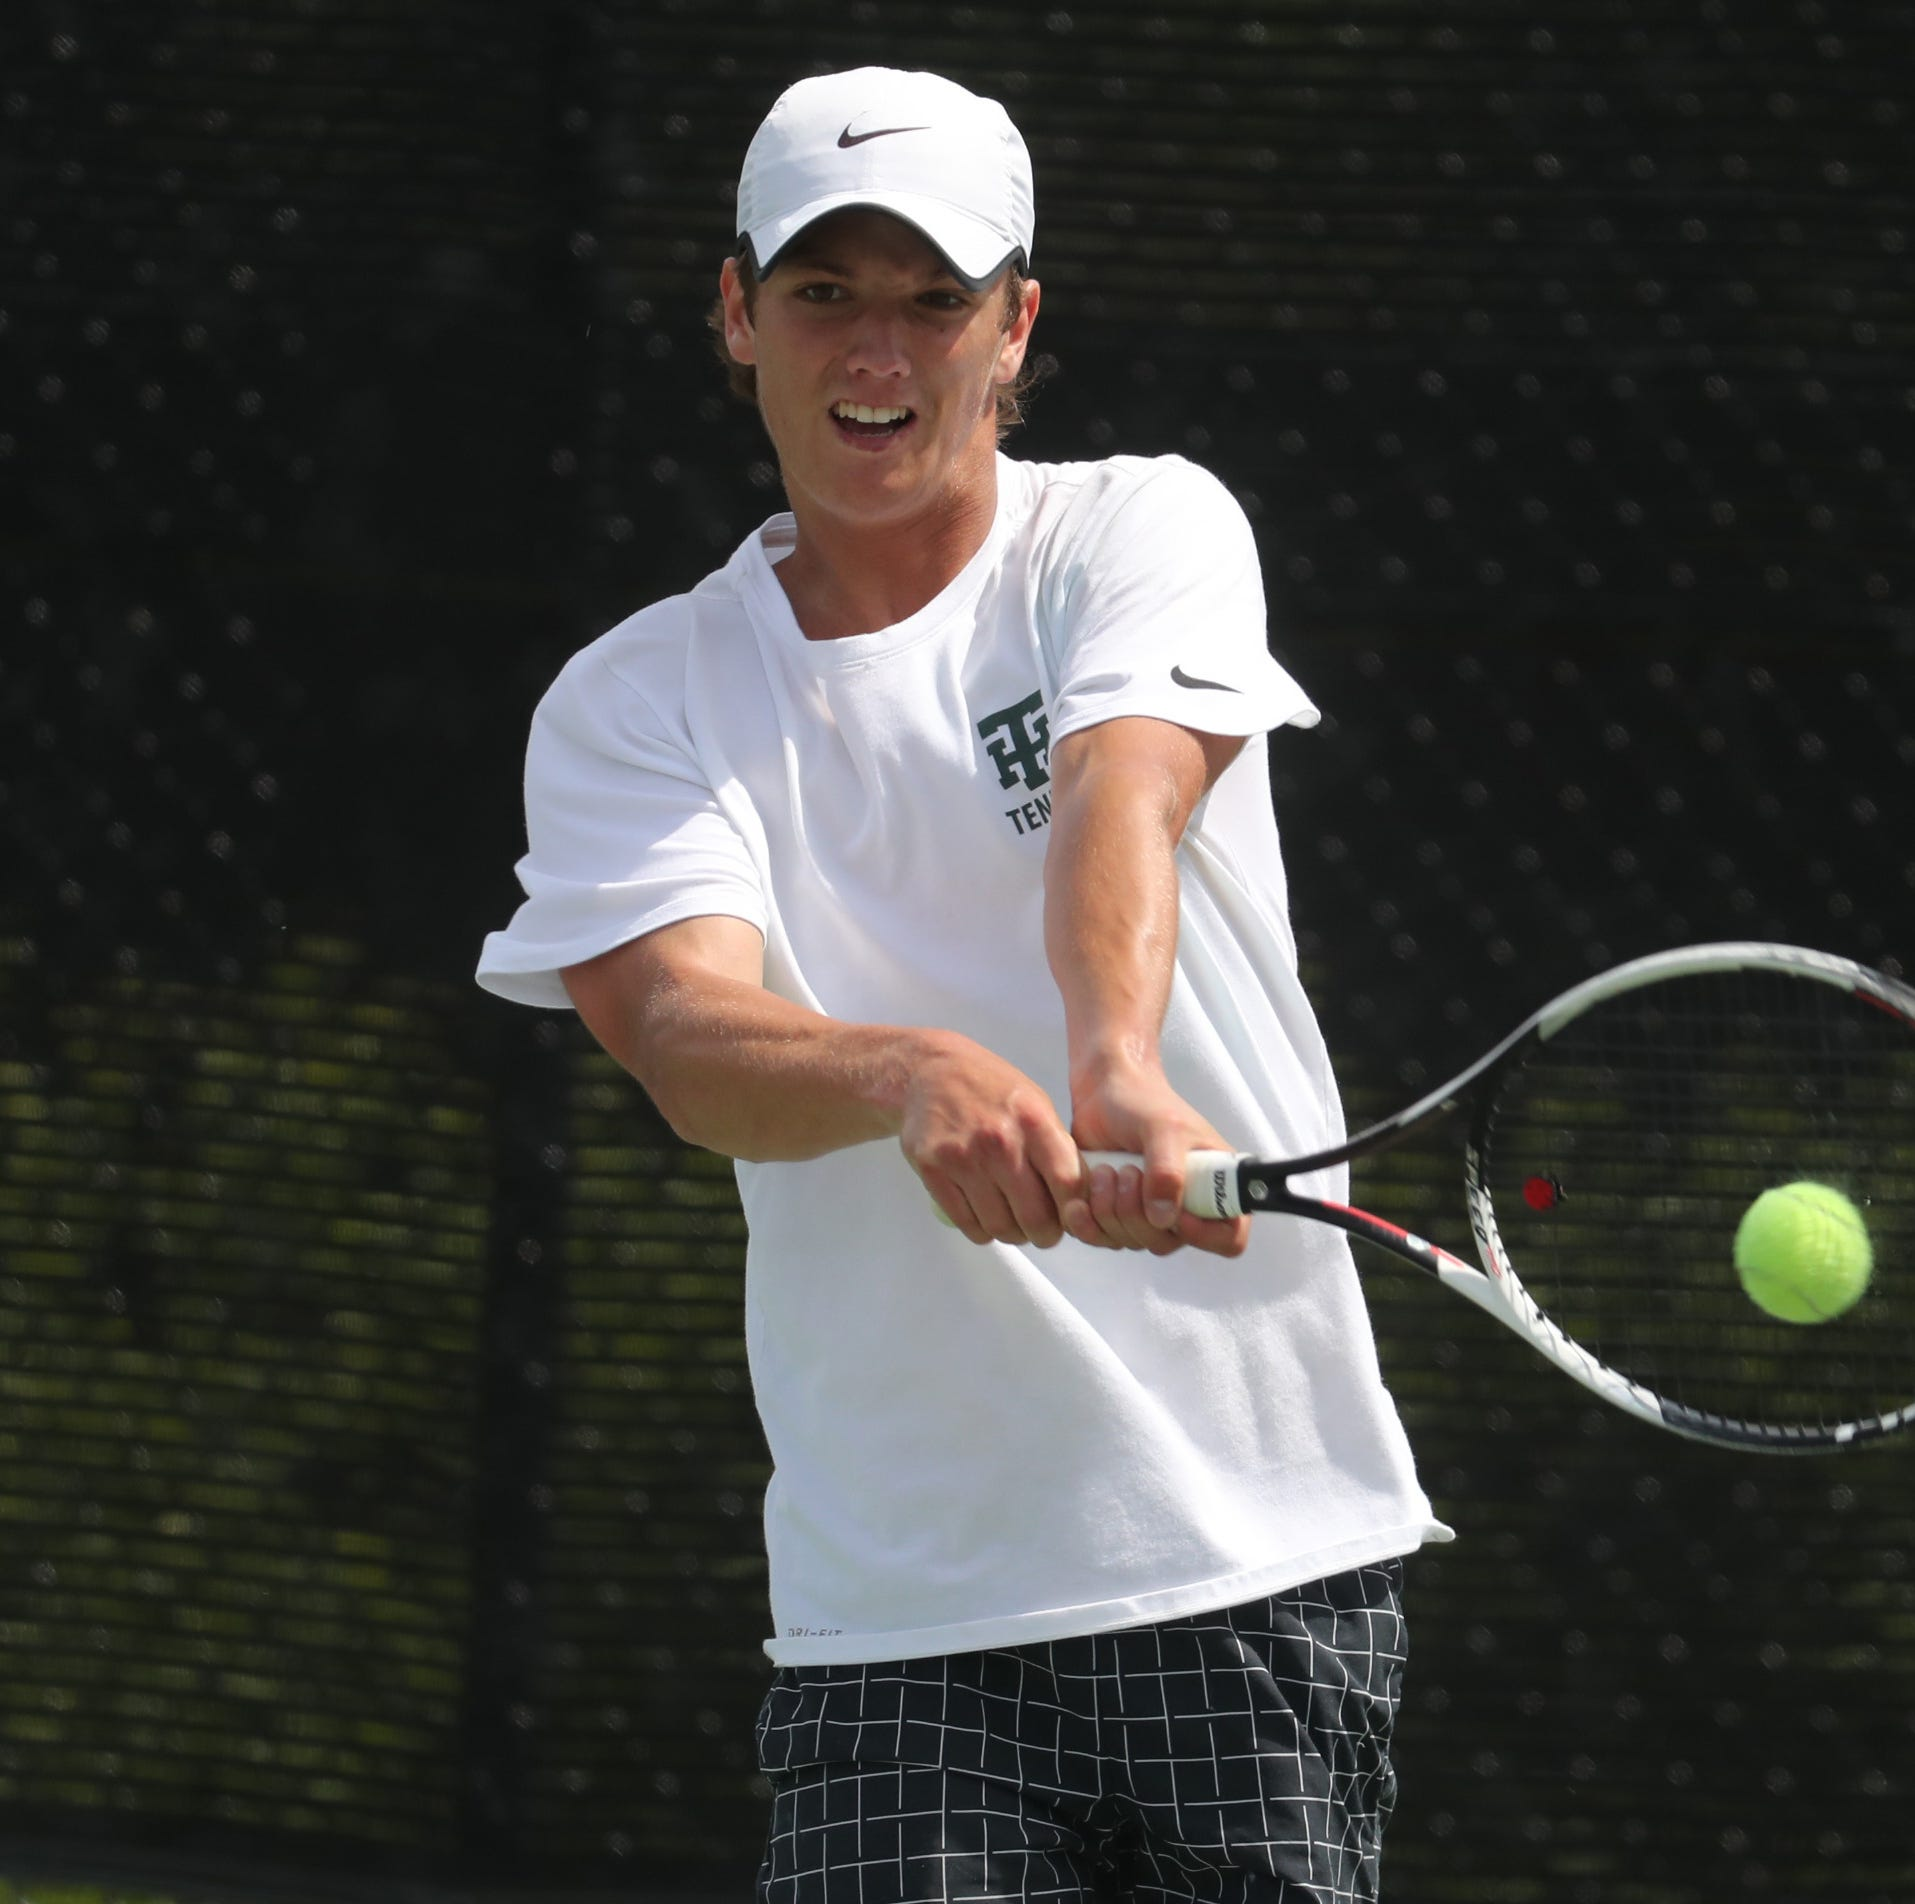 Tower Hill boys, Dover girls smash way to DIAA Tennis team championships